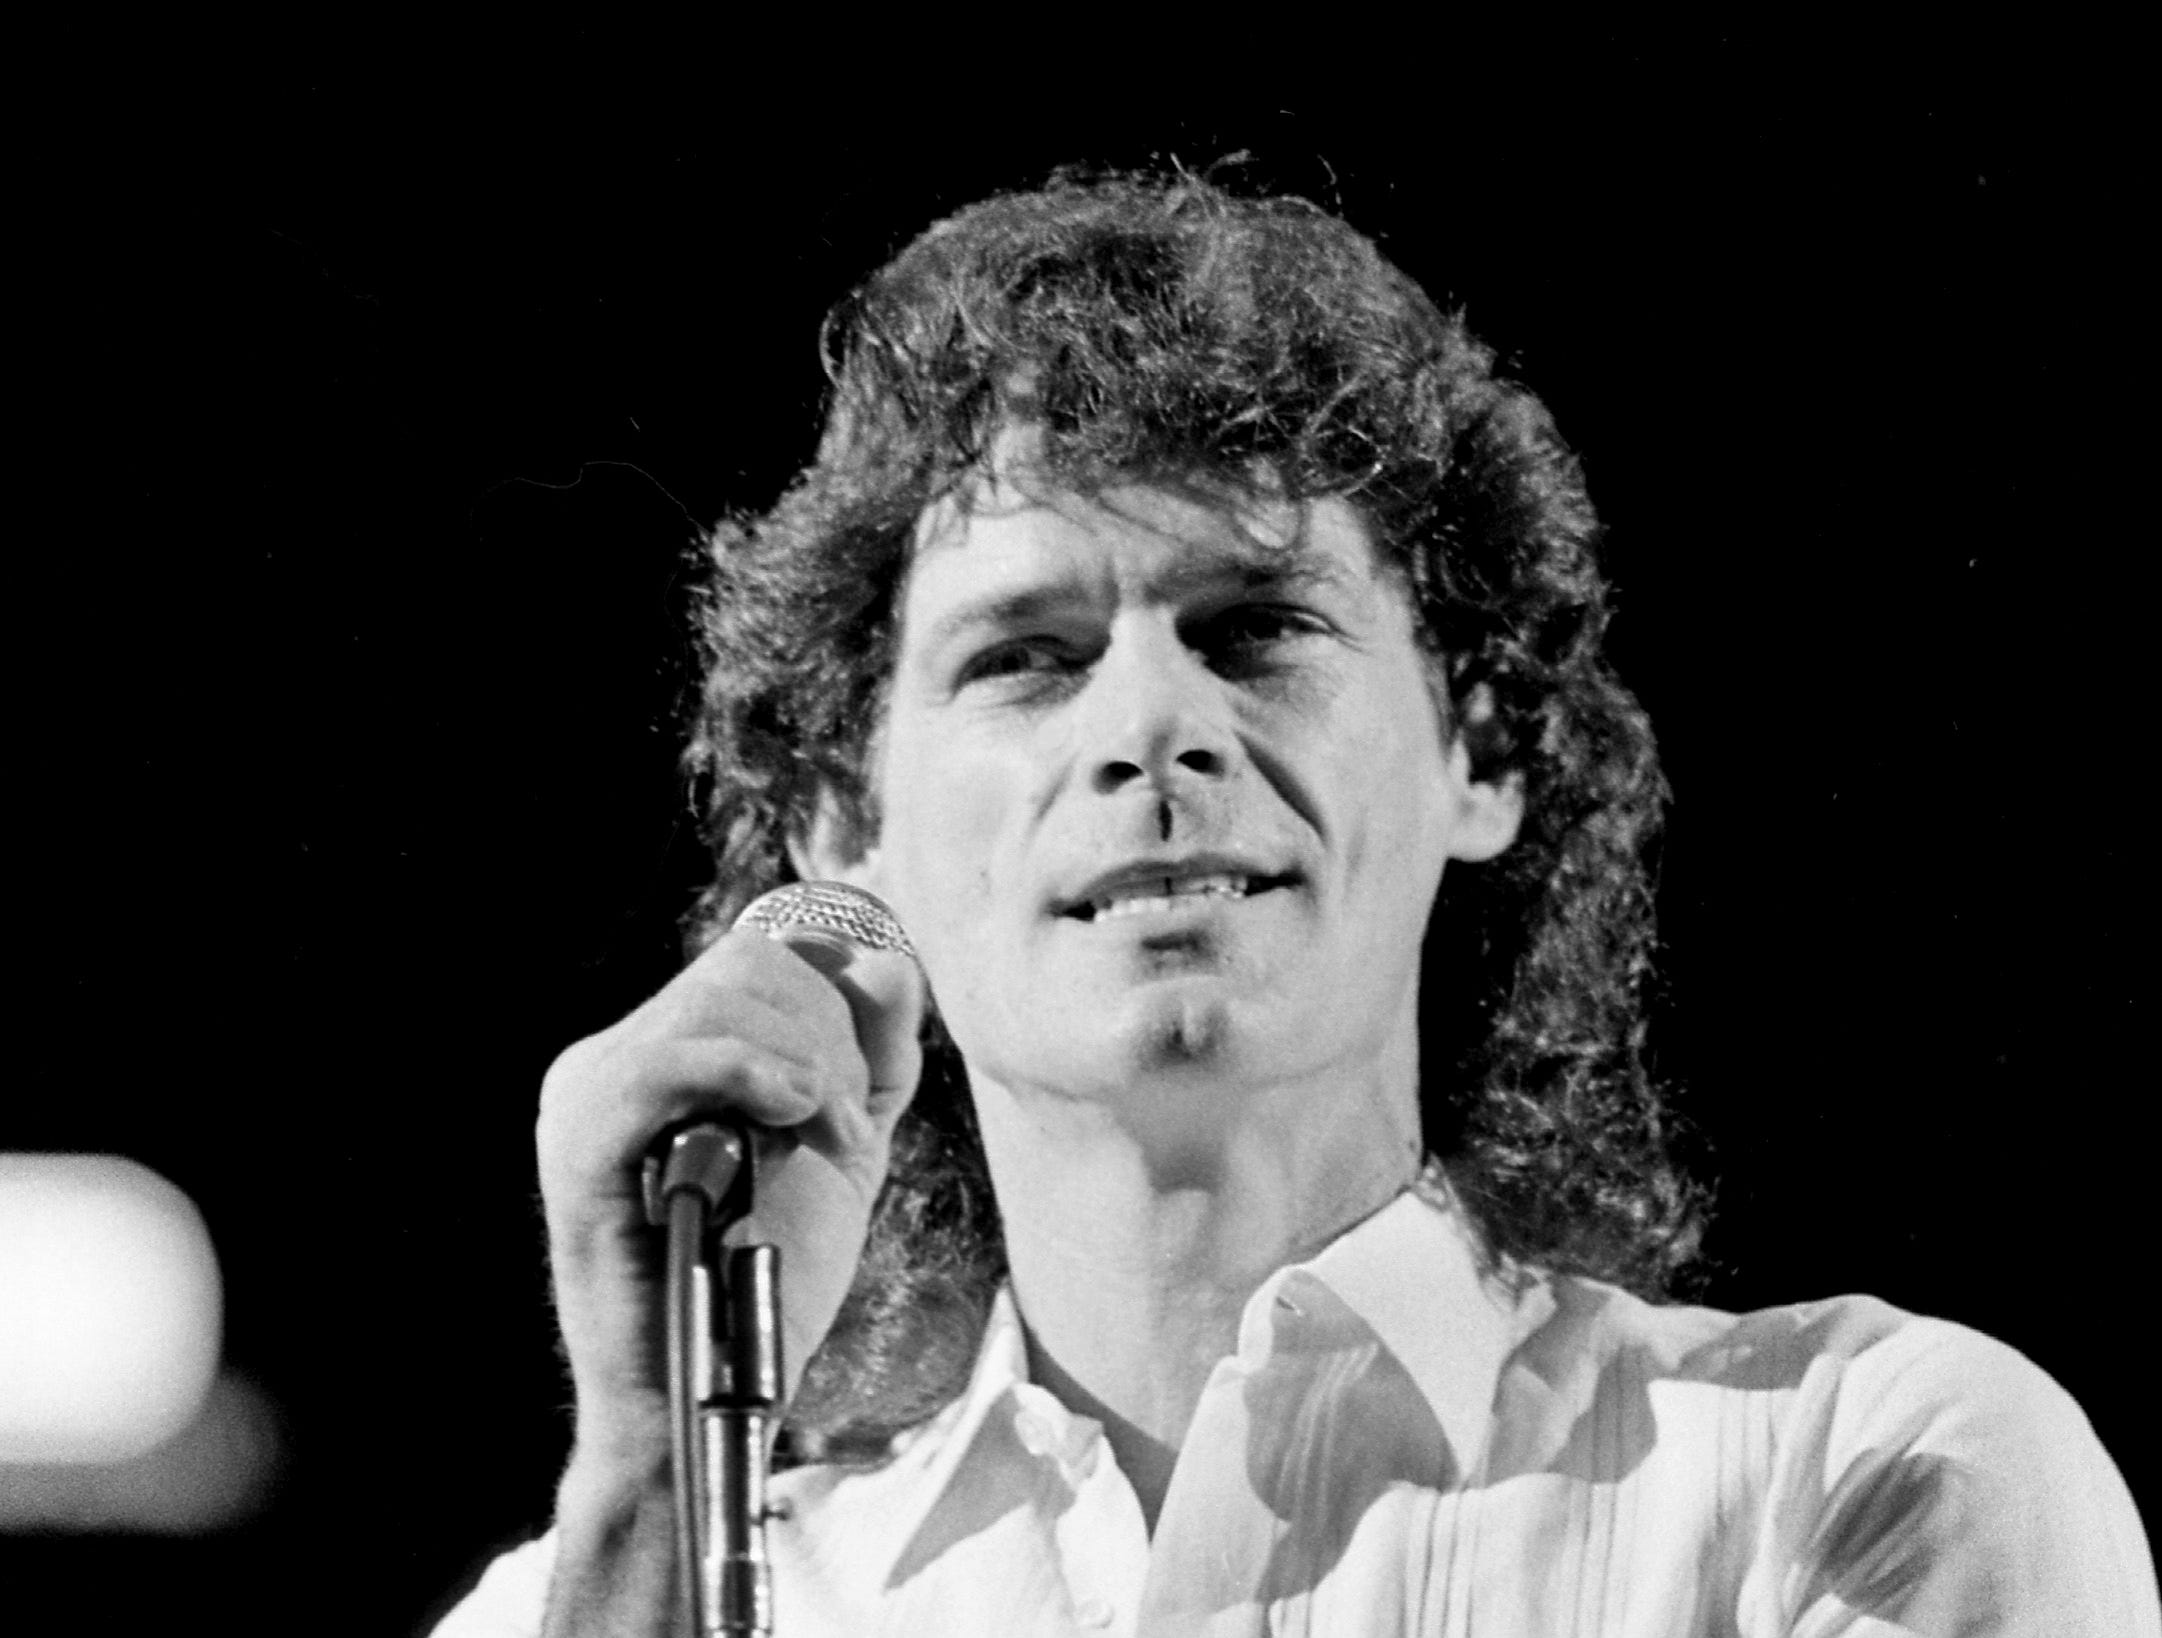 B.J. Thomas performs for a sold-out crowd at the Municipal Auditorium in Nashville on Nov. 5, 1983.